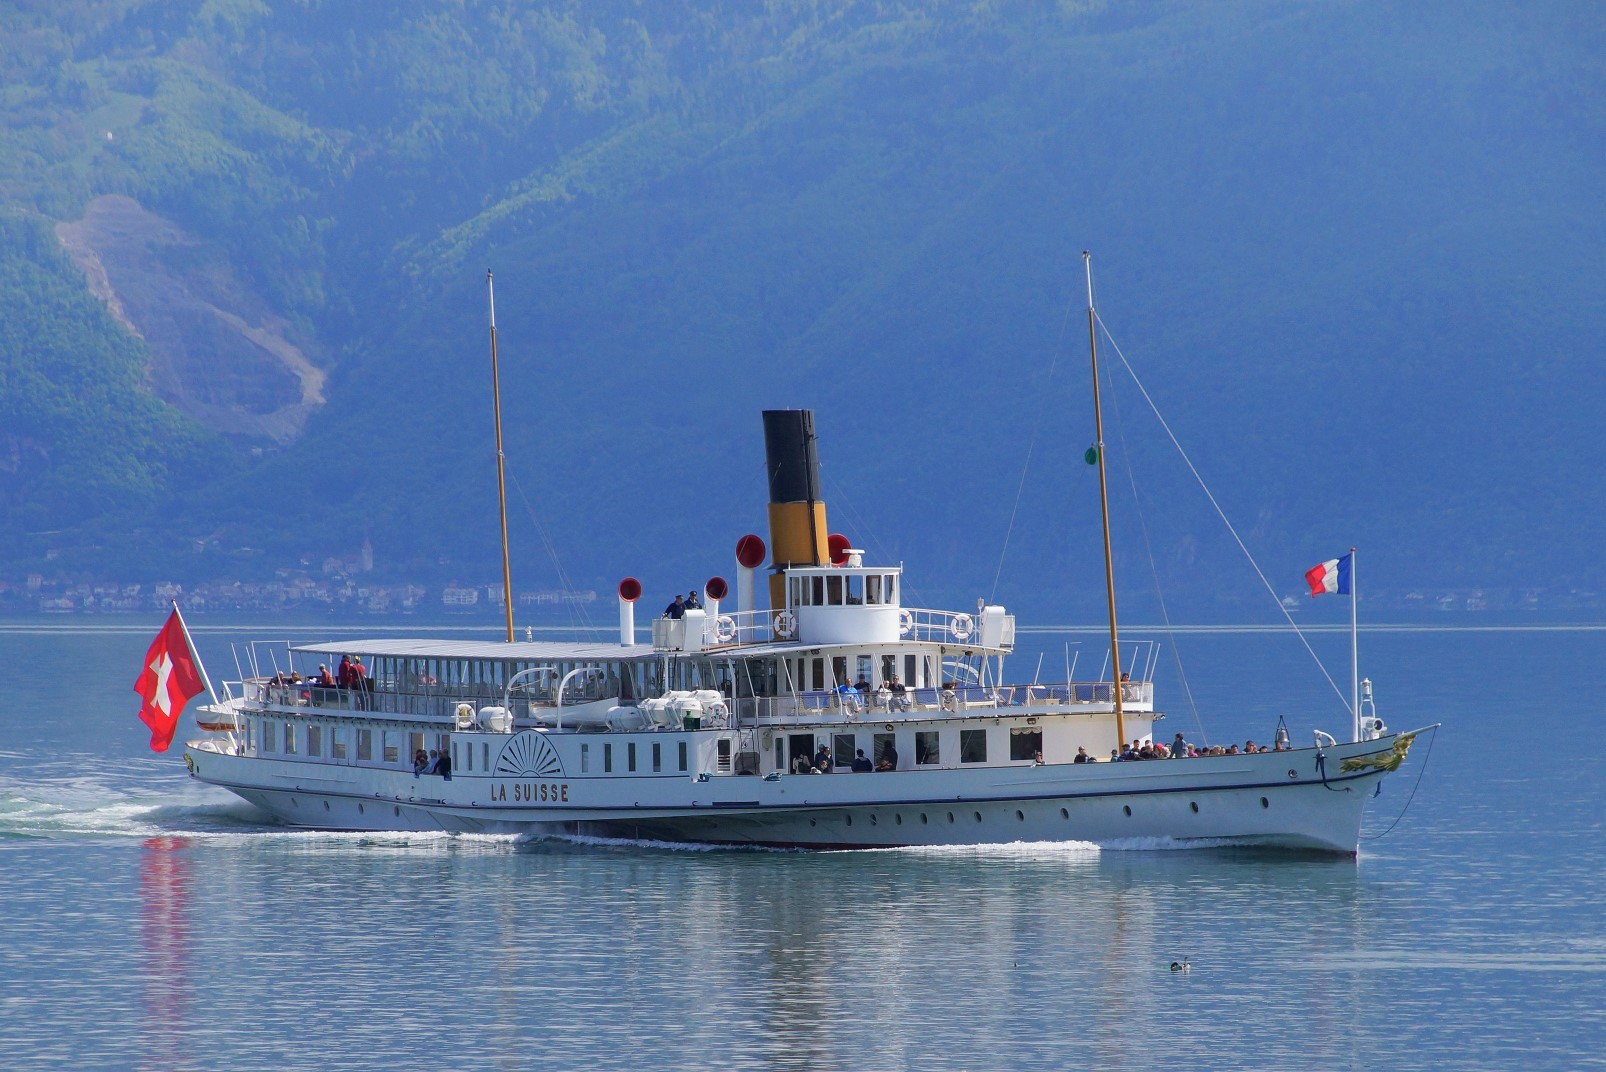 Belle Epoque cruises